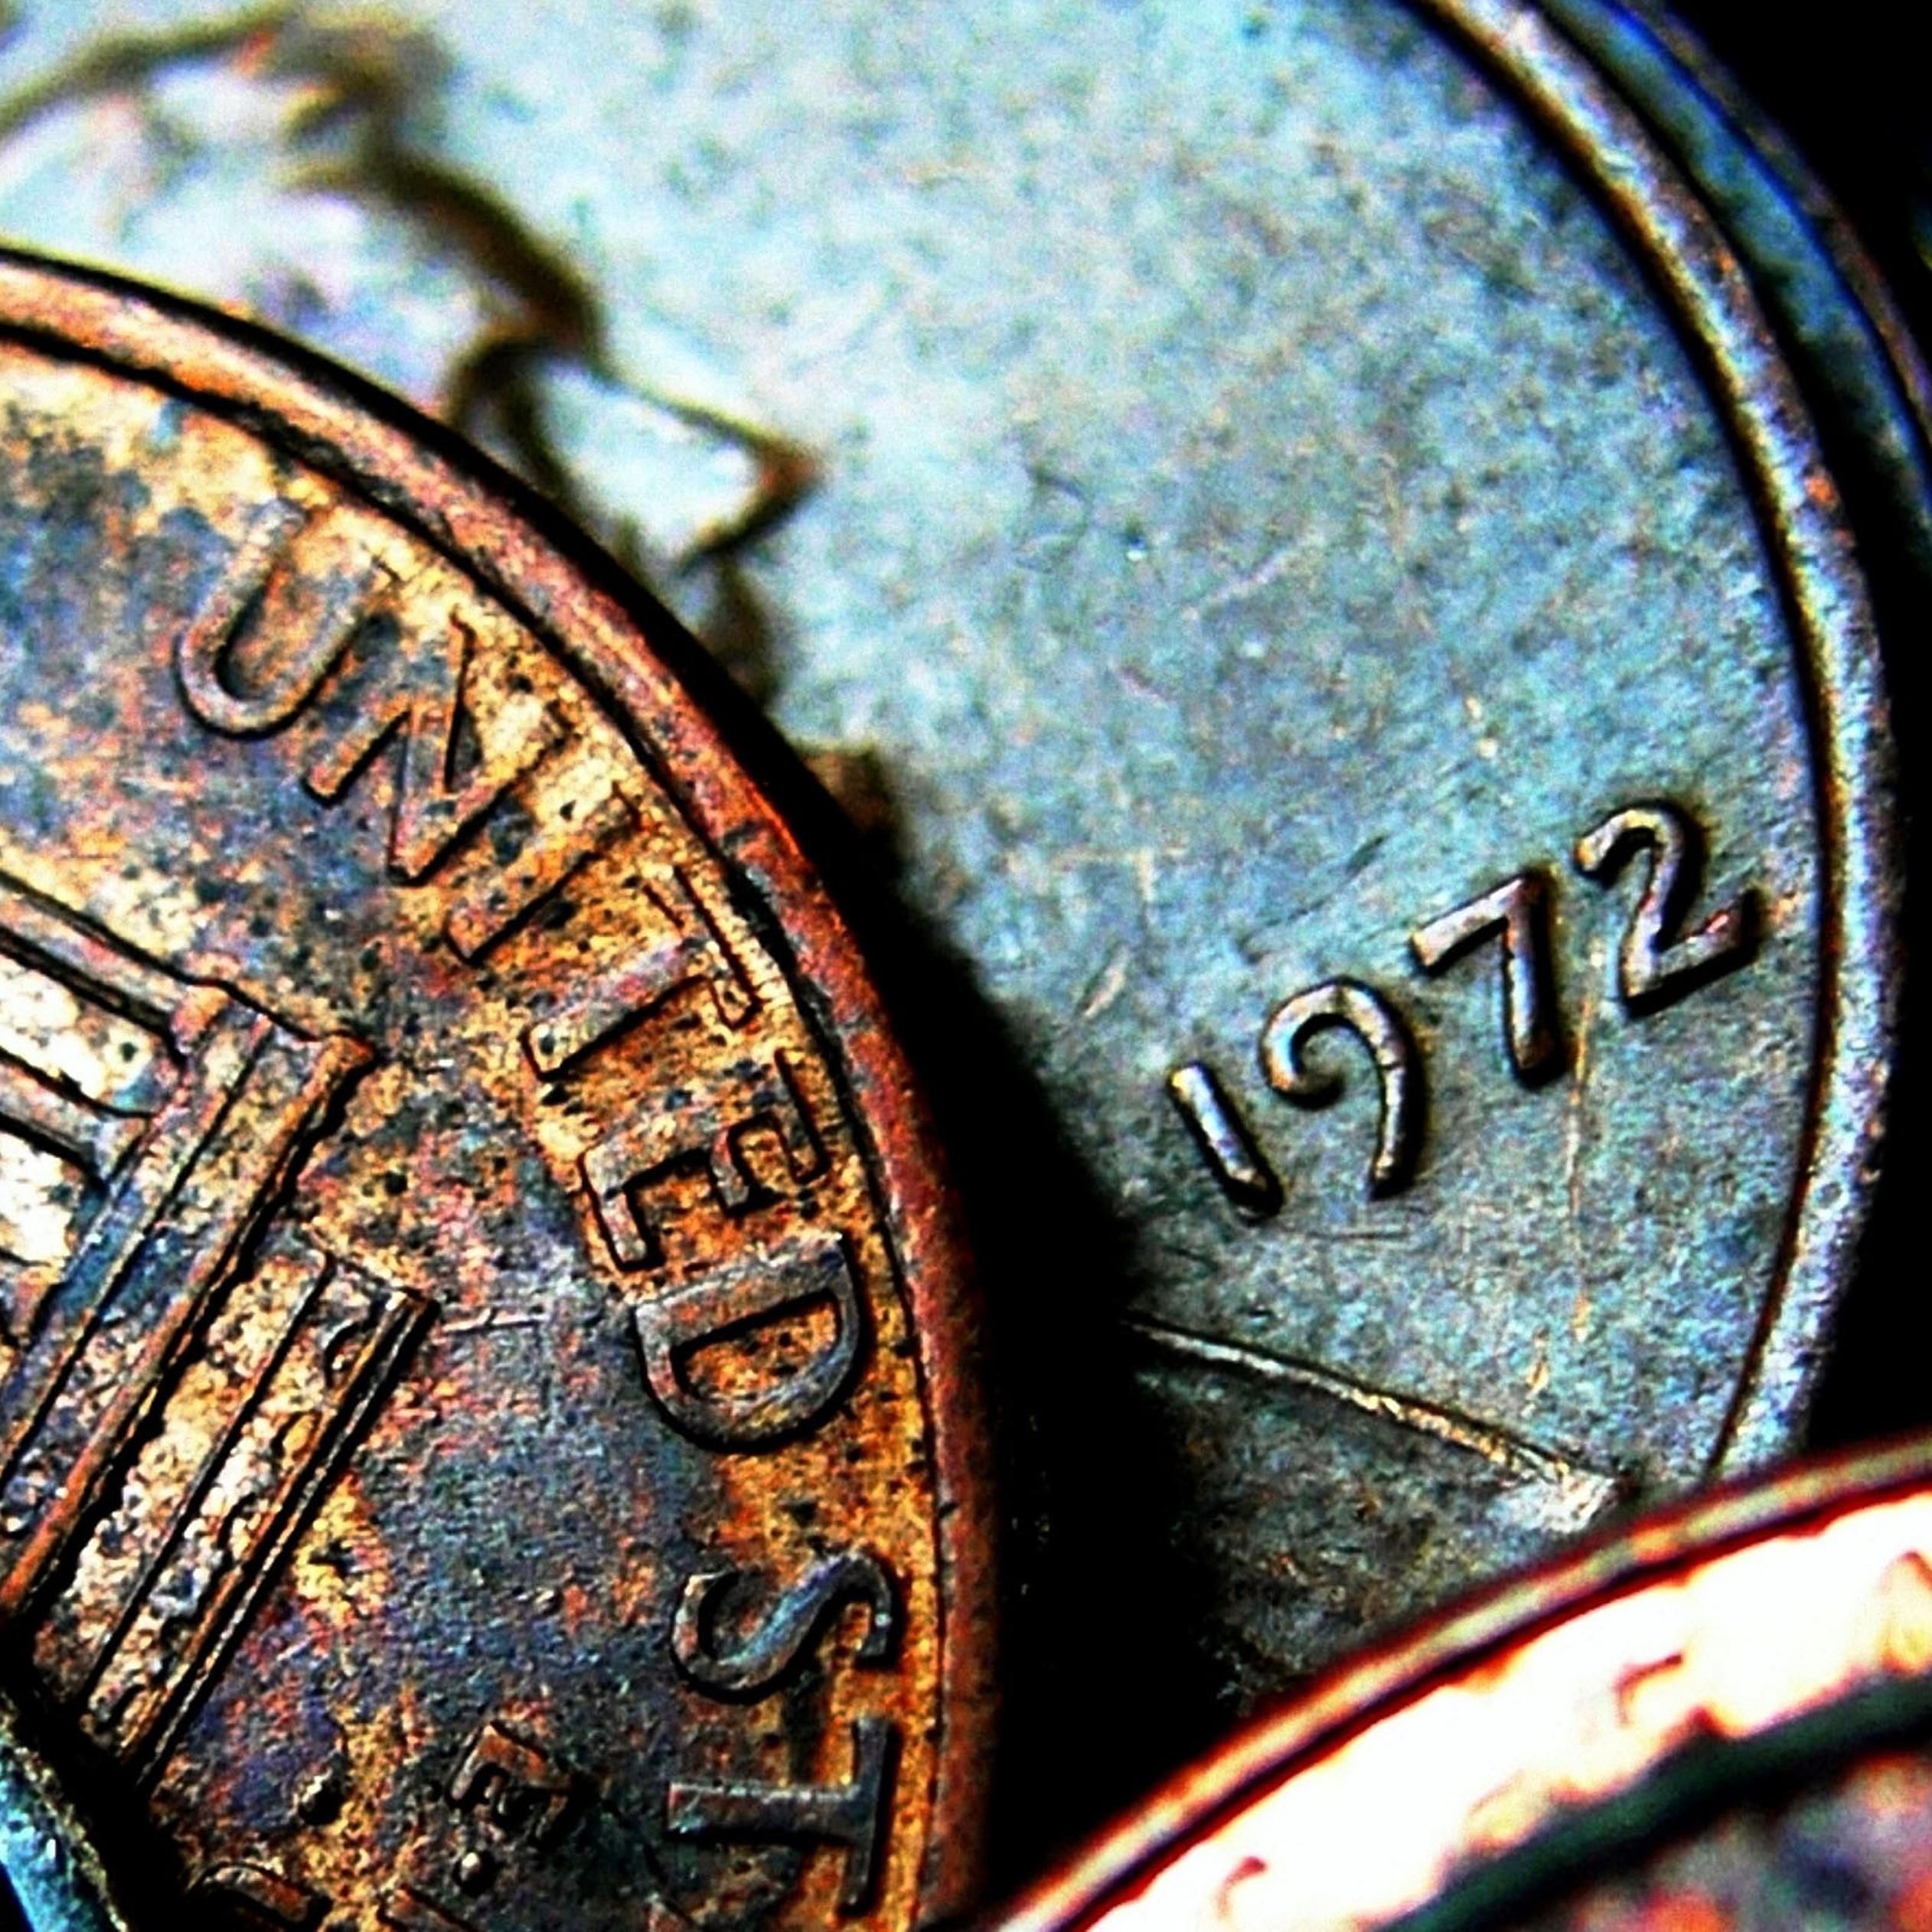 Macro Old Coins From United States Of America Wallpaper Download 2524x2524